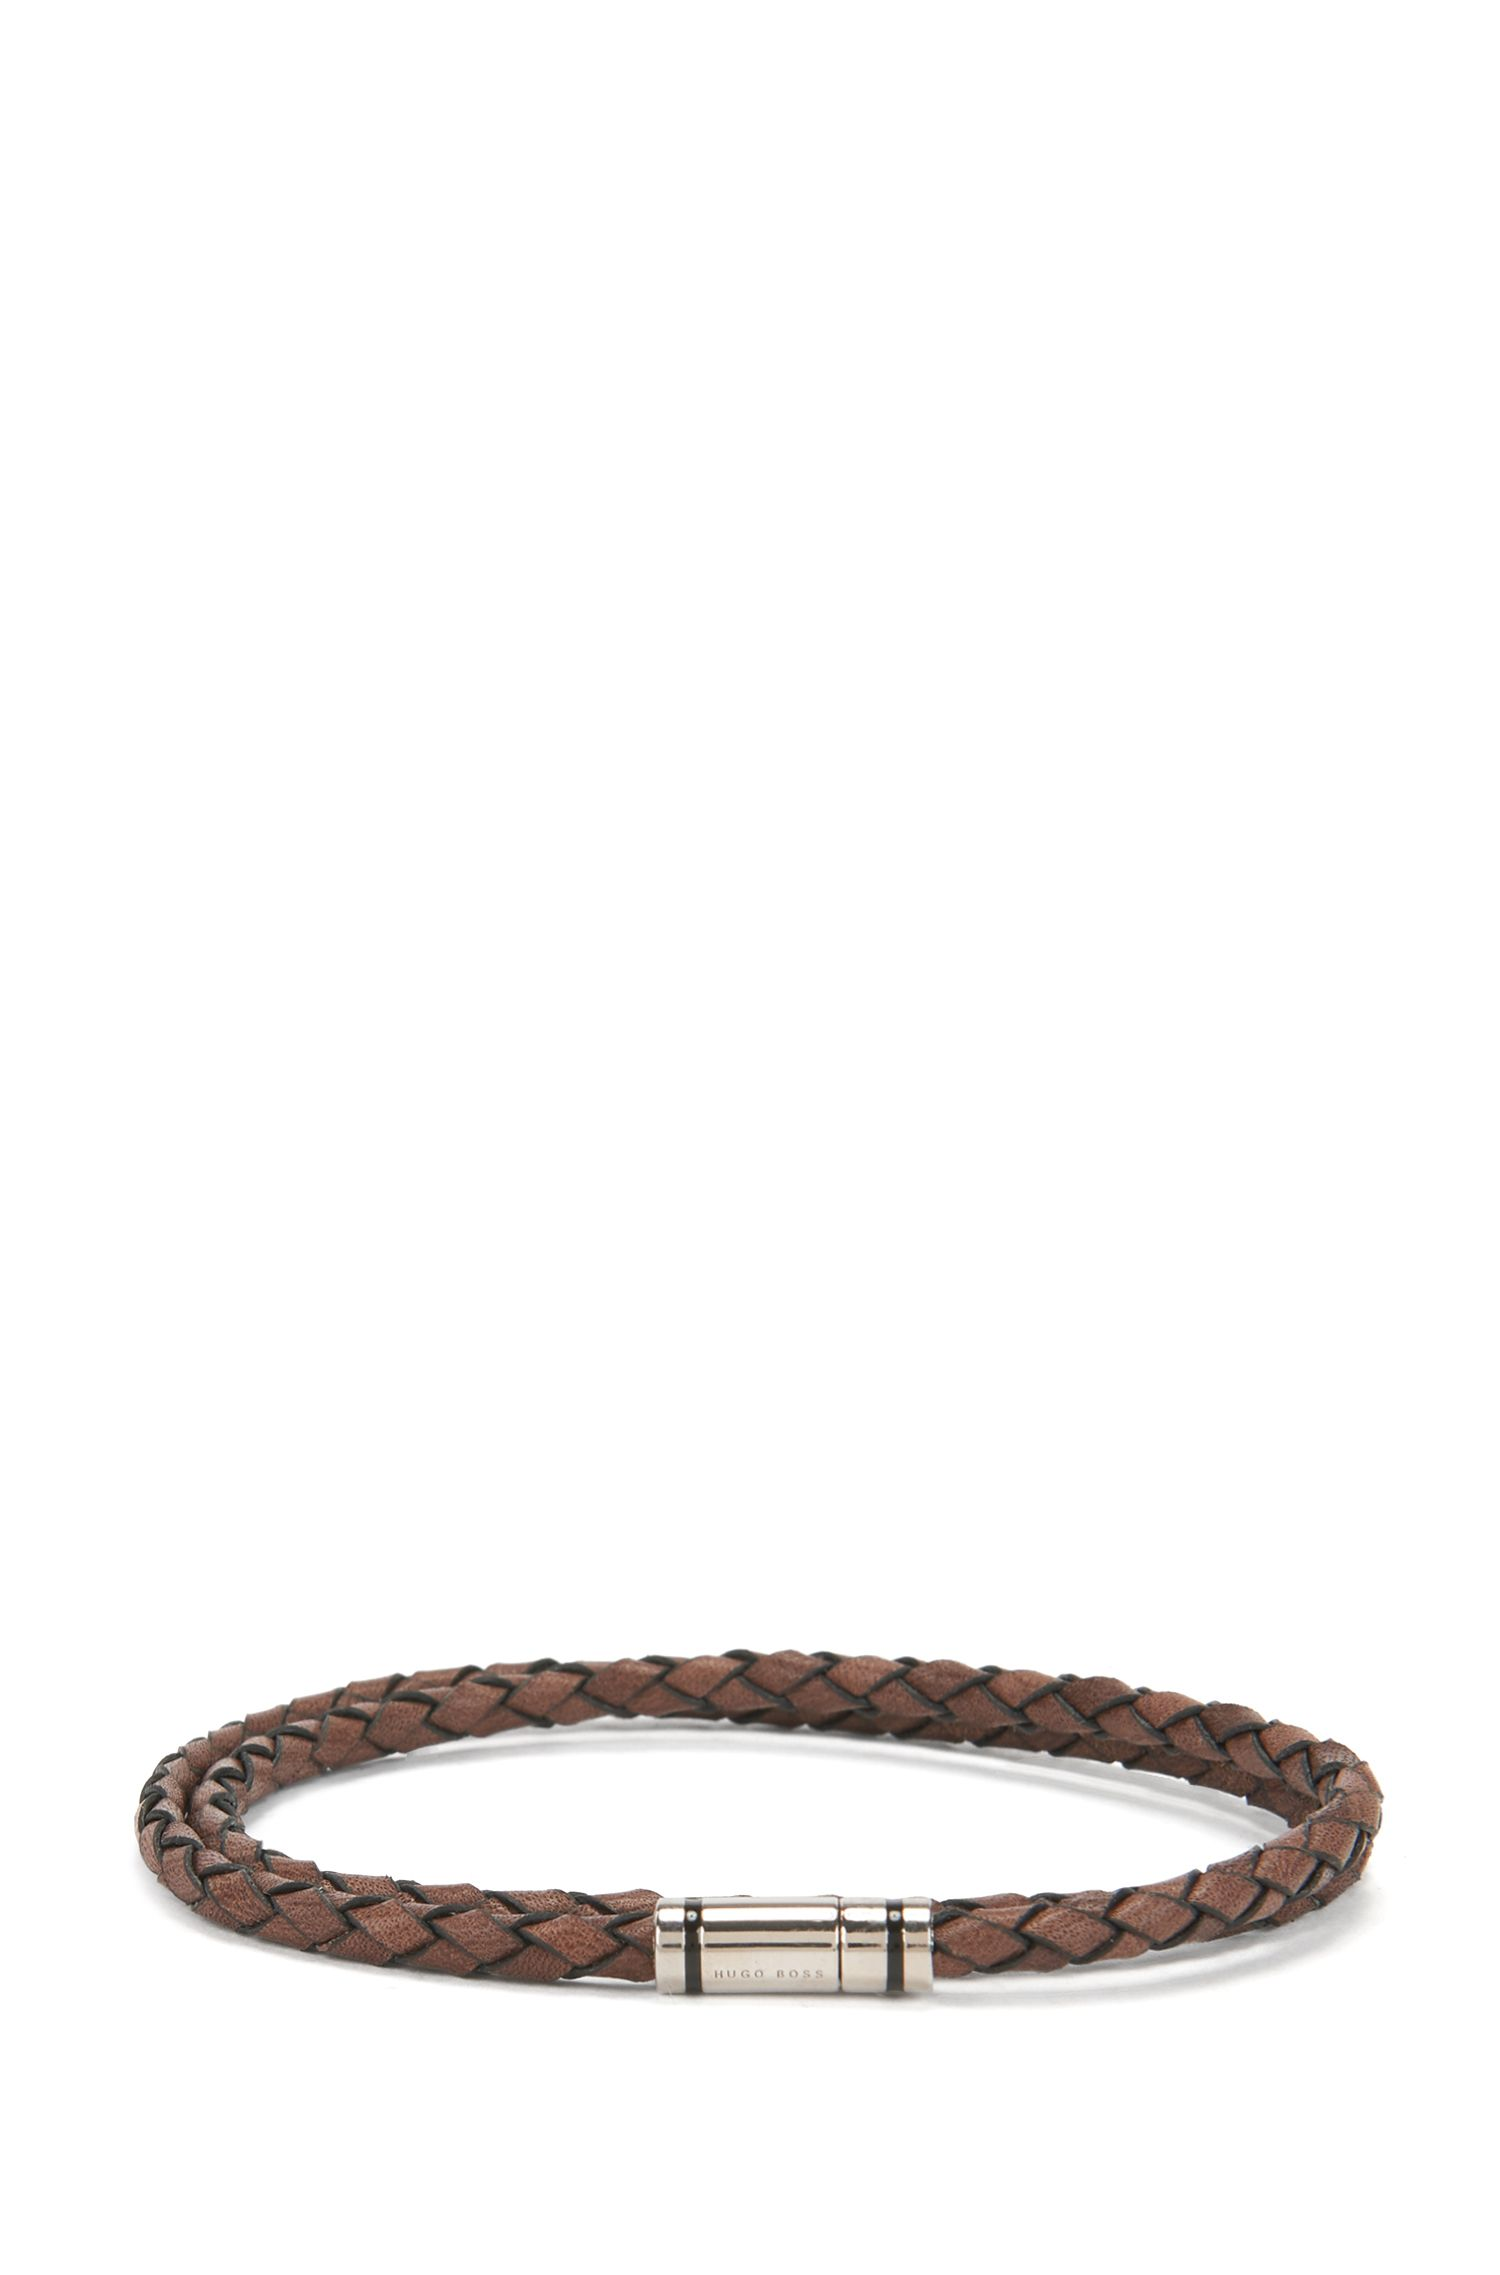 HUGO BOSS Braided leather double bracelet ufc3TxLz2